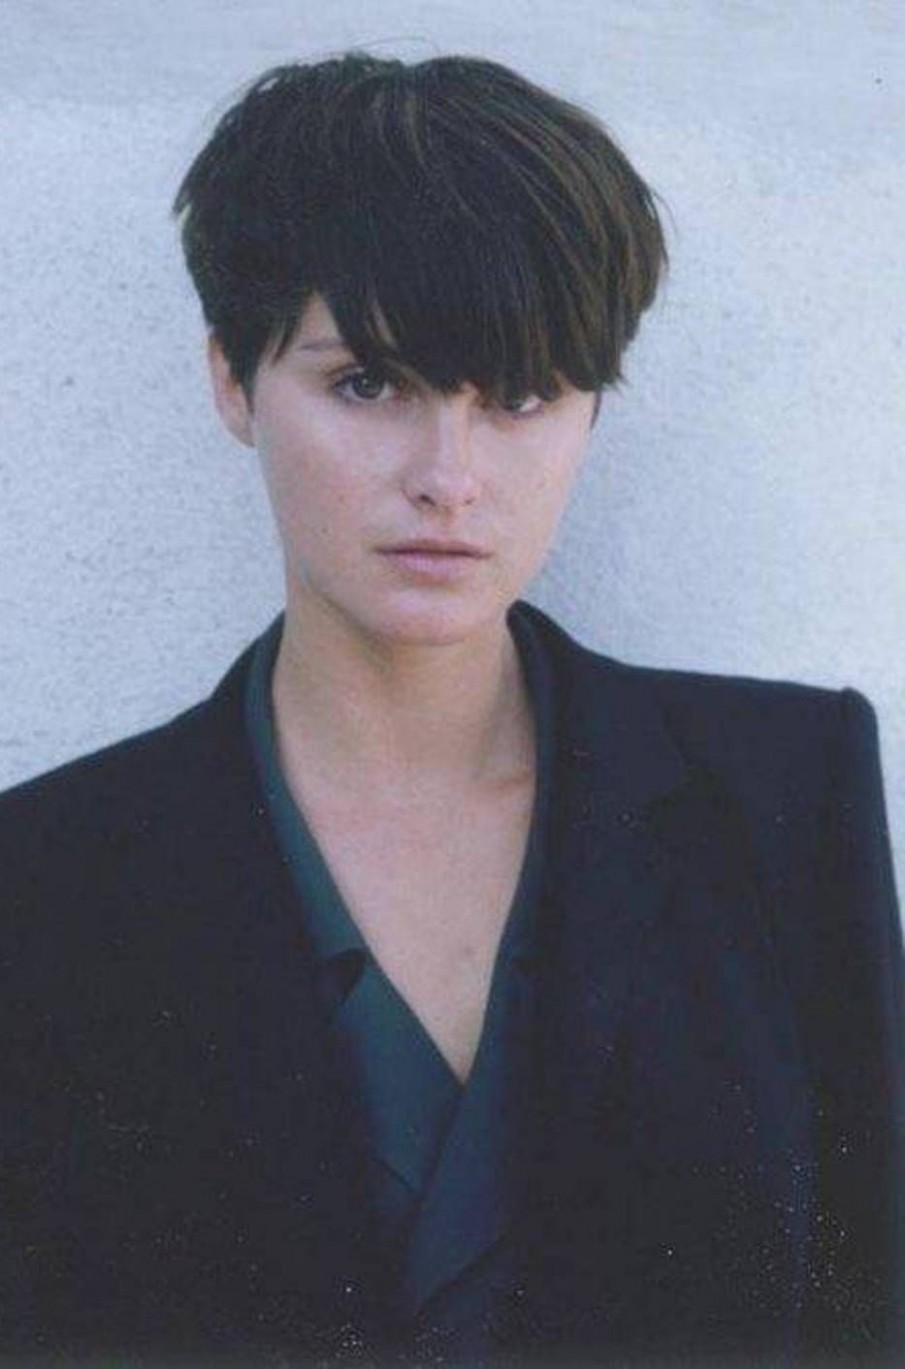 Pin On Short Hairstyles 90S Short Hairstyles